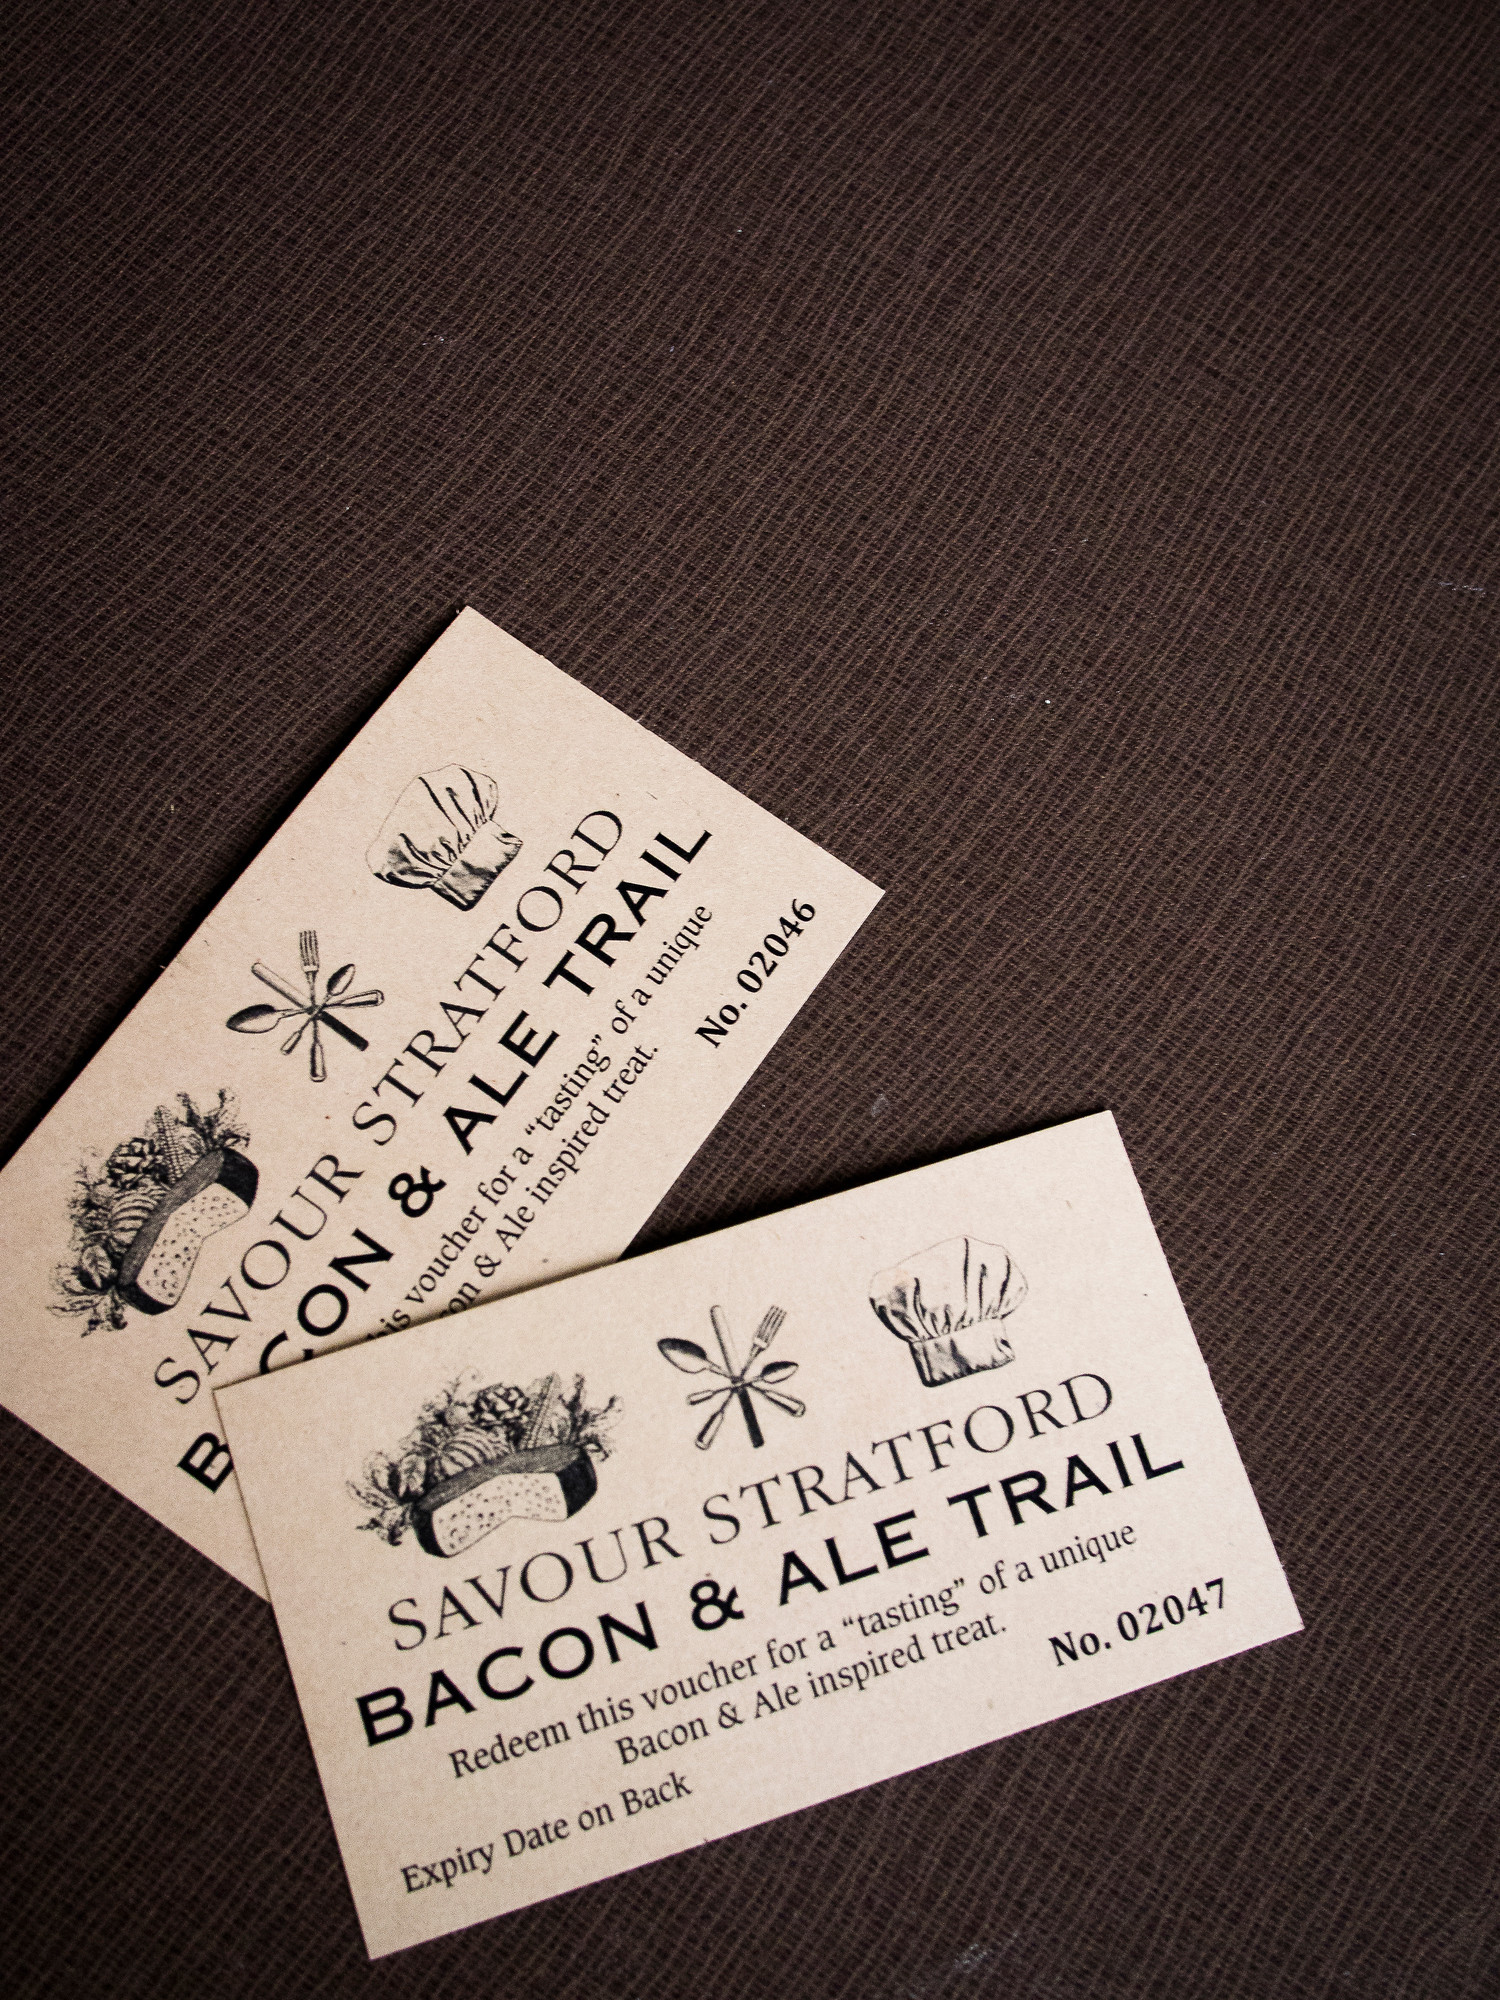 The bacon and ale trail features 13 spots in Stratford to stop for a bit of pork and a pint of beer.